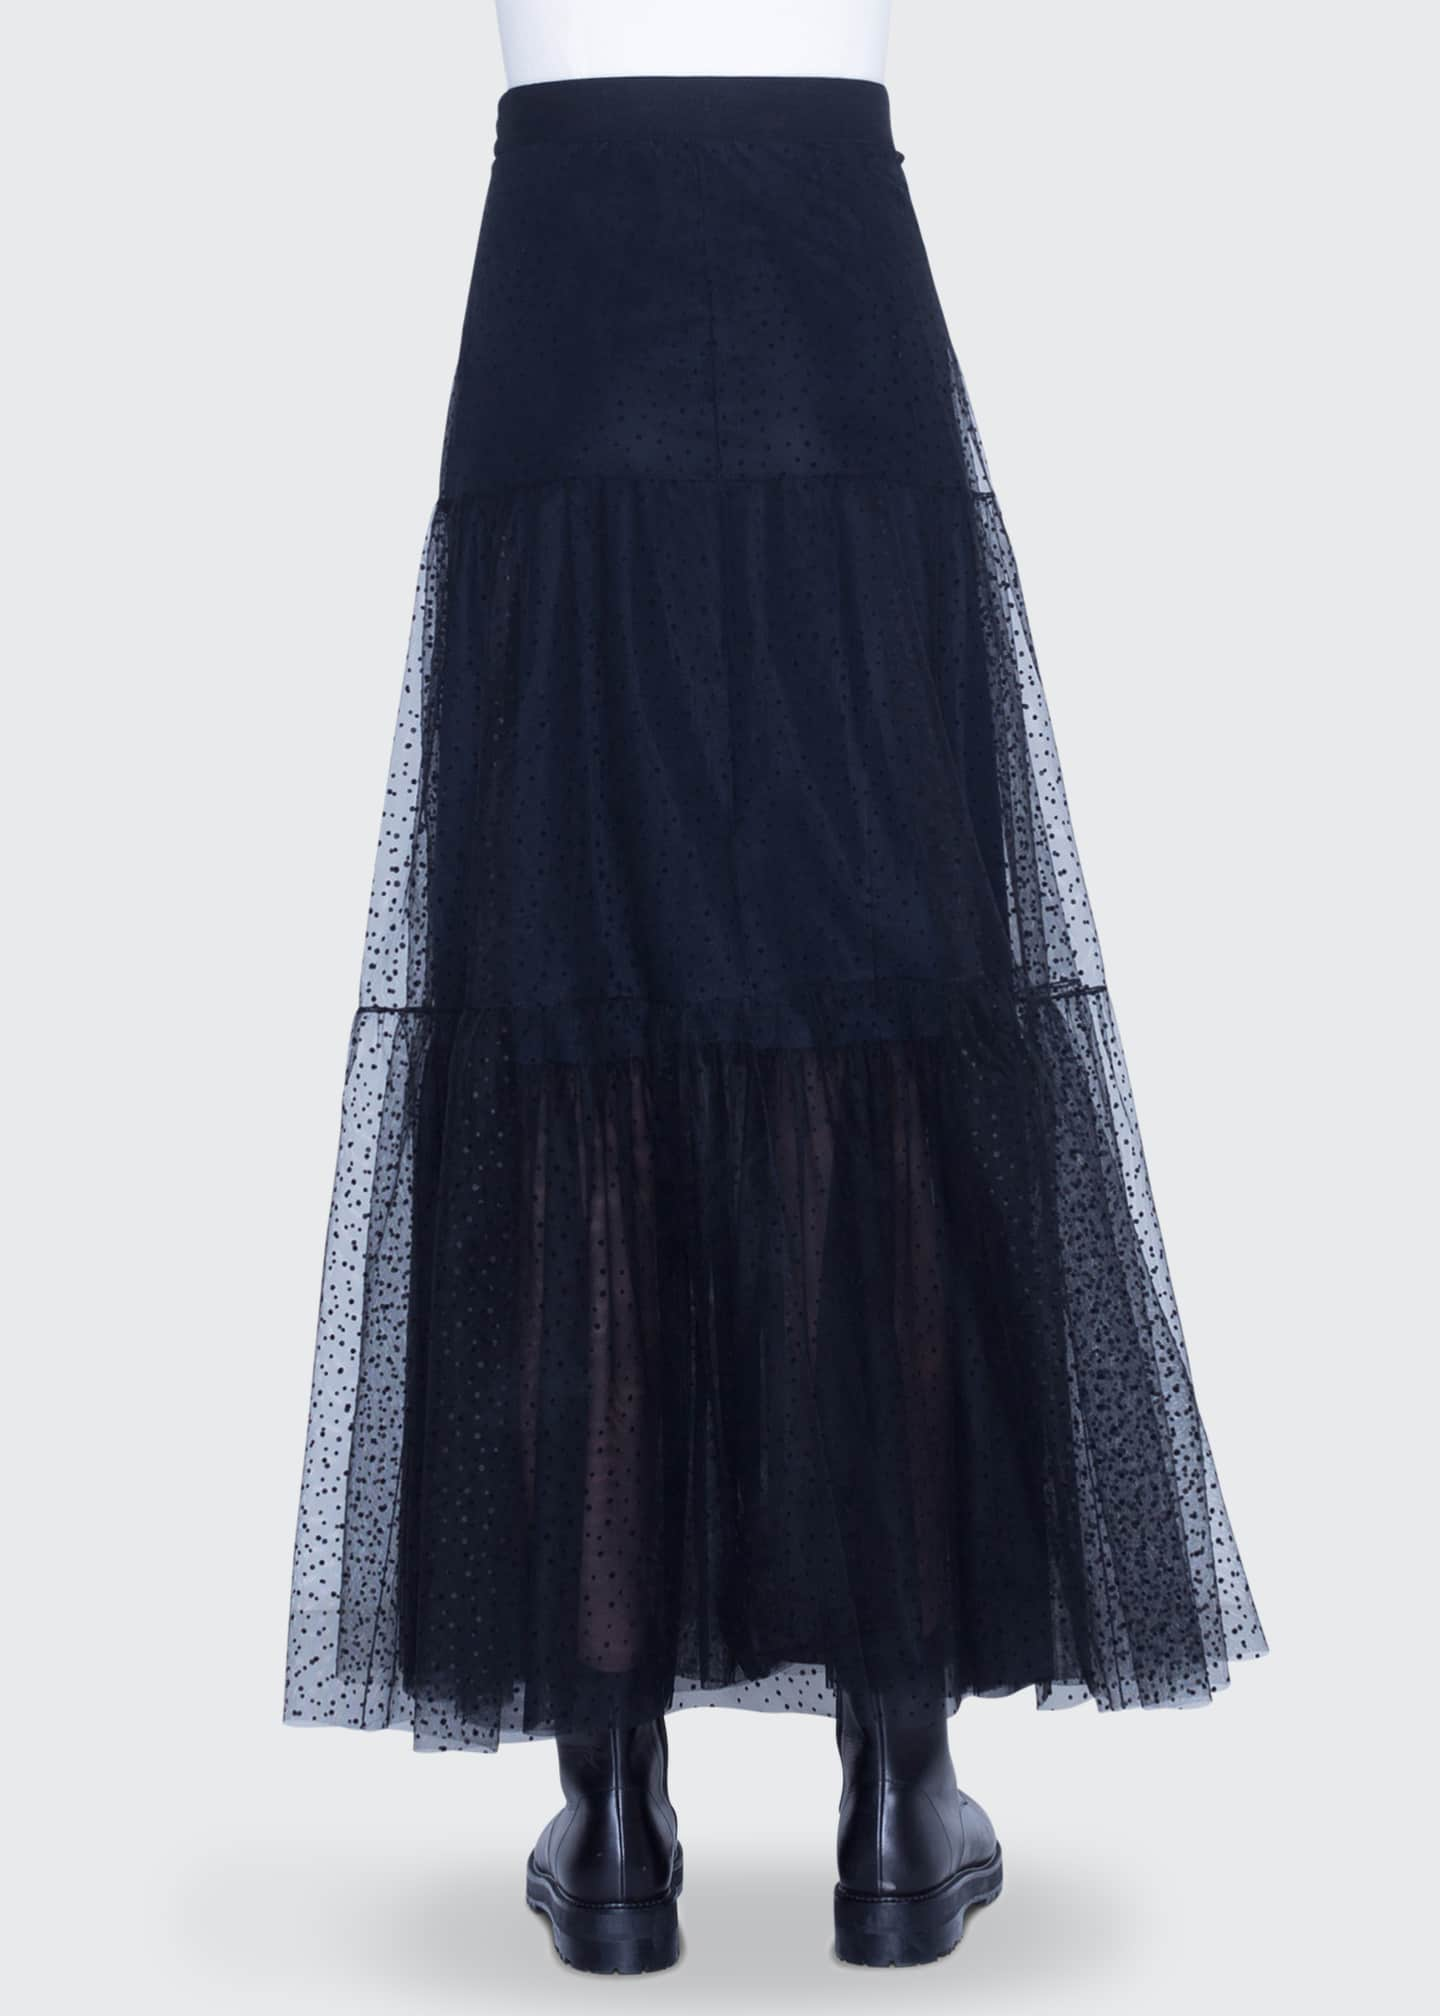 Image 2 of 2: Starry Sky Tulle Midi Skirt